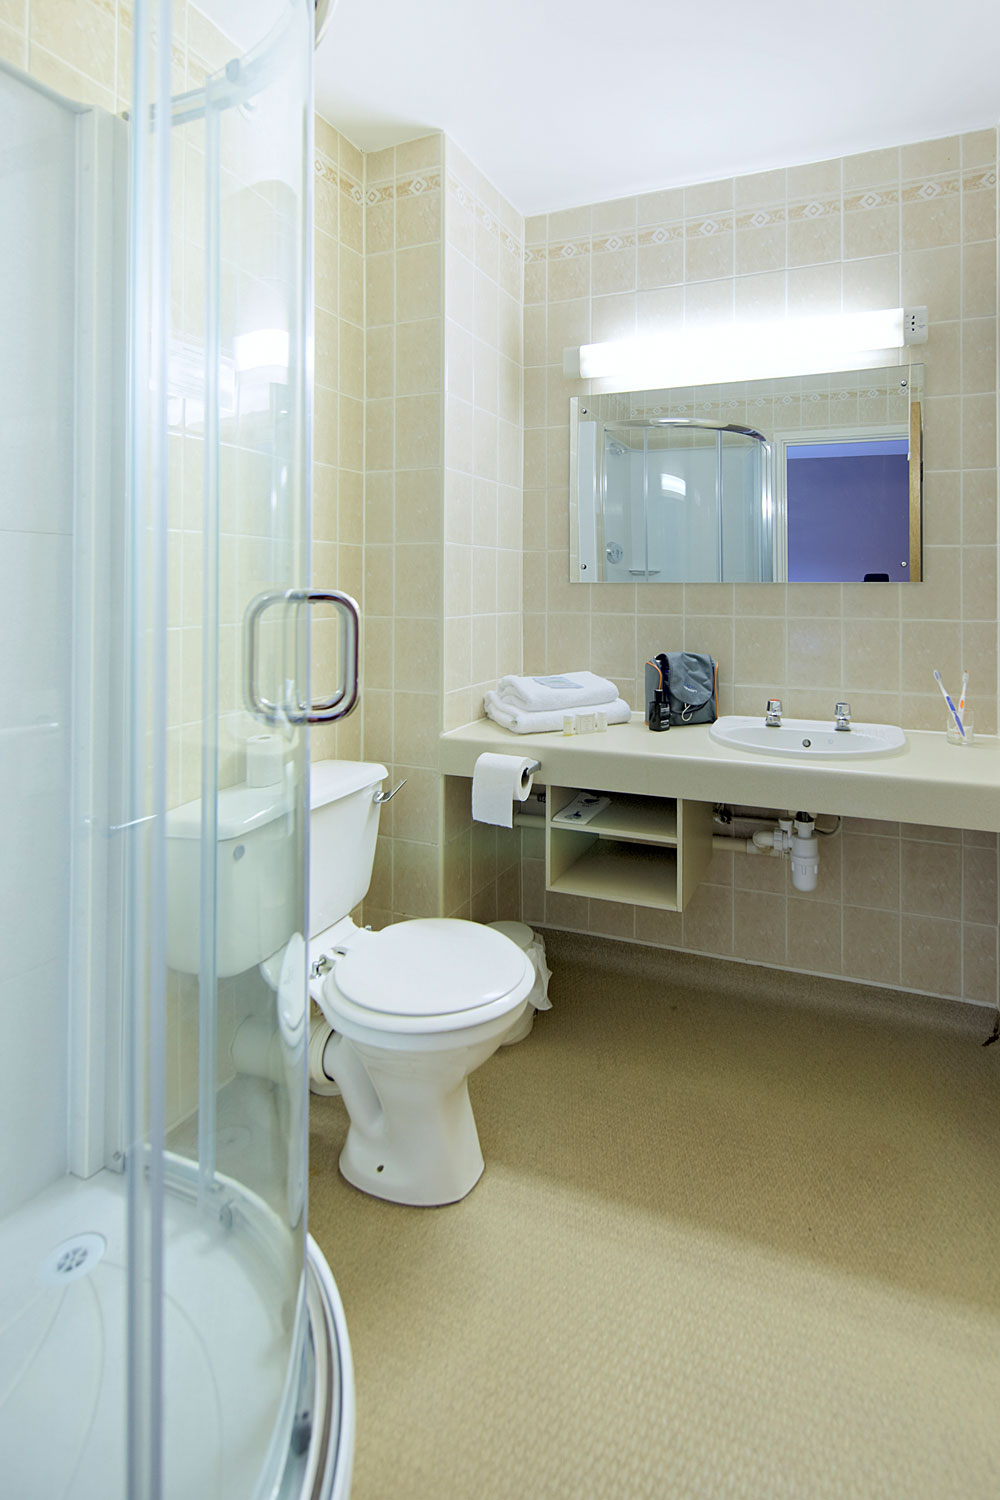 Keele University, accommodation en-suite shower room